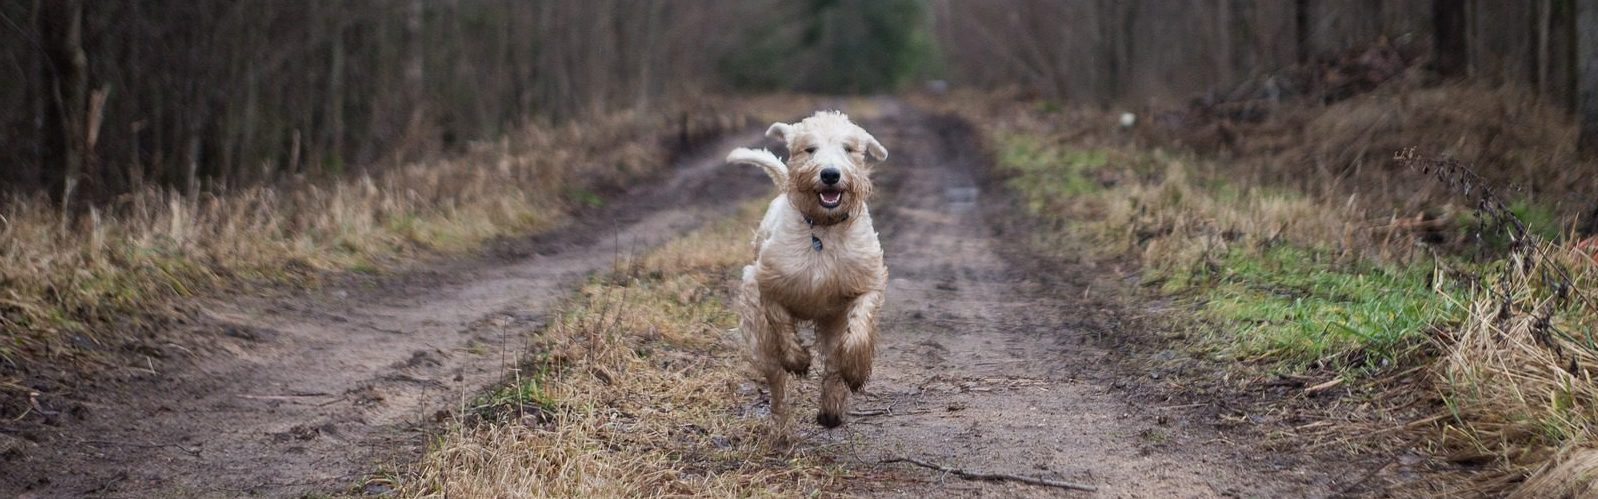 Rennende hond in bos